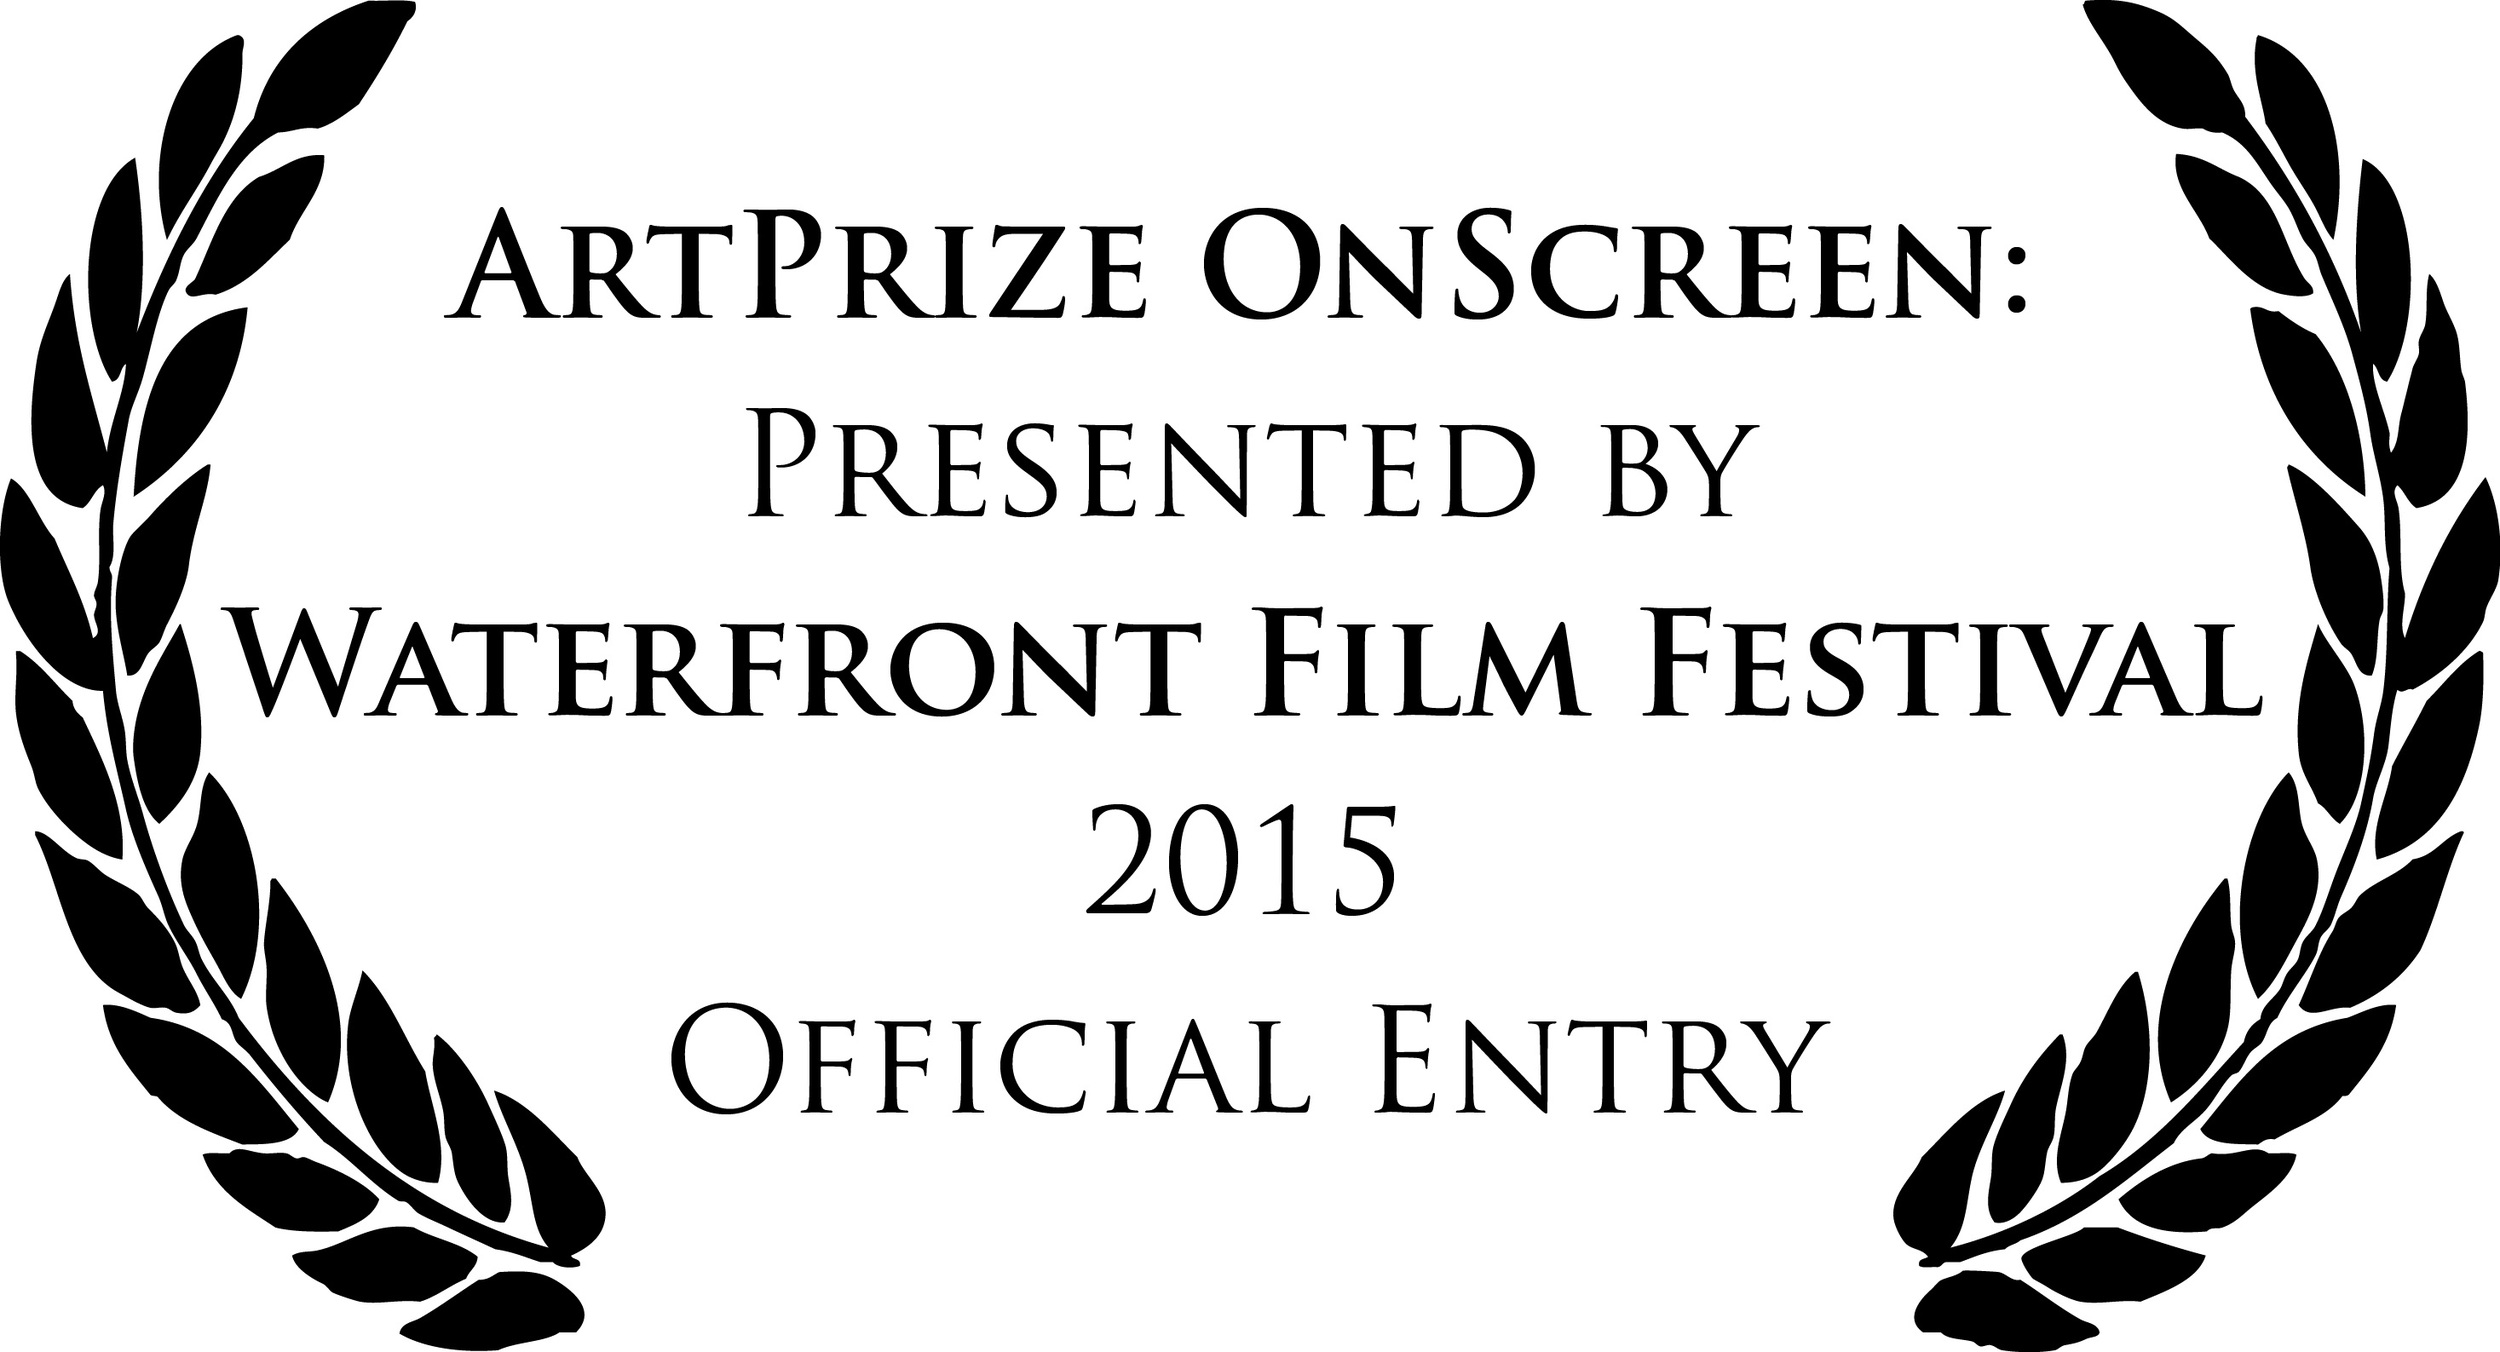 ARTPRIZE ONSCREEN: PRESENTED BY WATERFRONT FILM FESTIVAL - 2015 OFFICIAL ENTRY